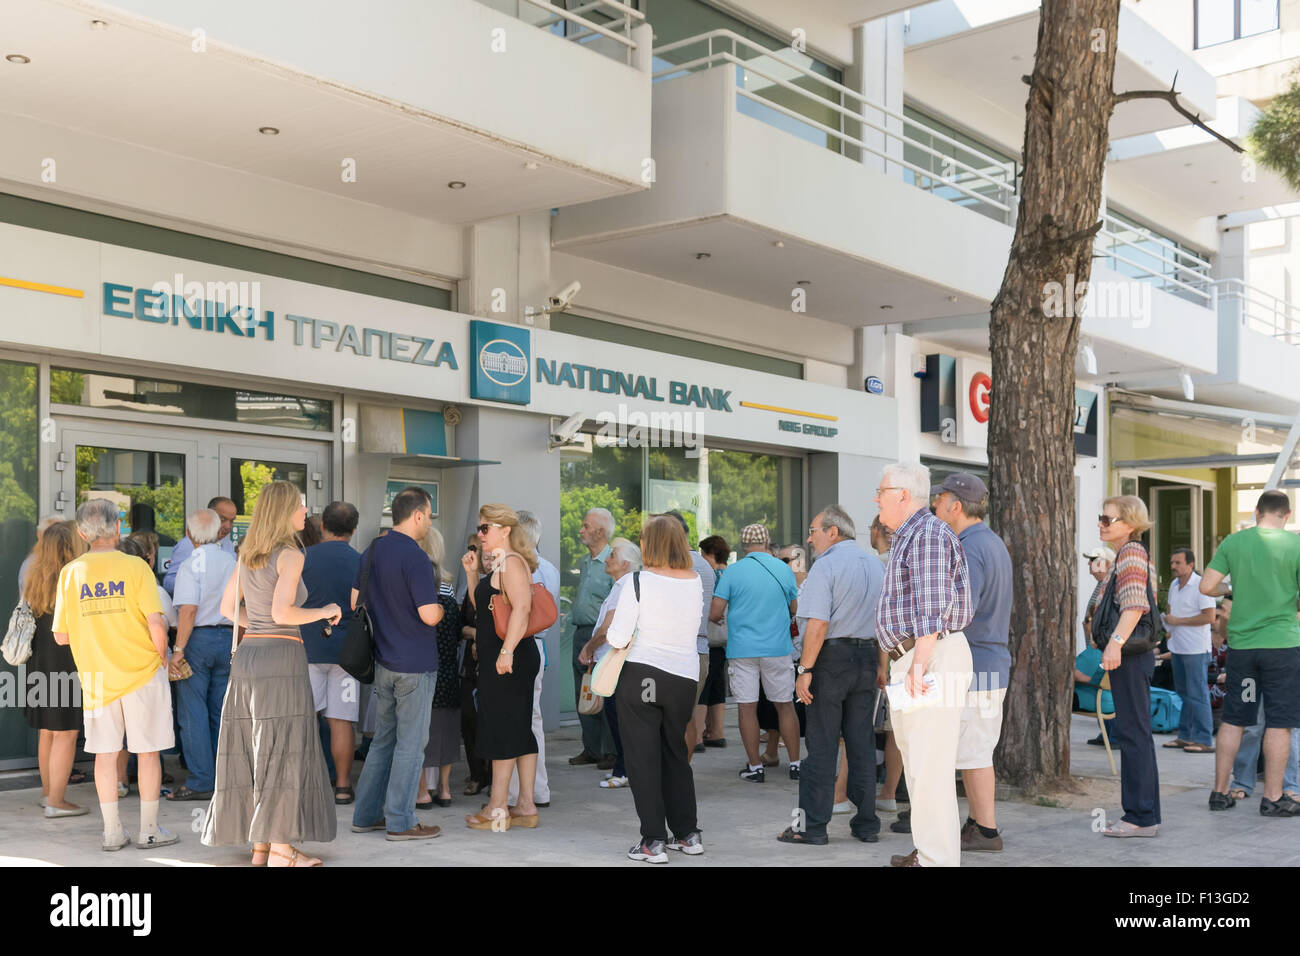 Athens, Greece 24 July 2015. Capital controls continue in Greece making people feeling  discomfort and unsecure. - Stock Image